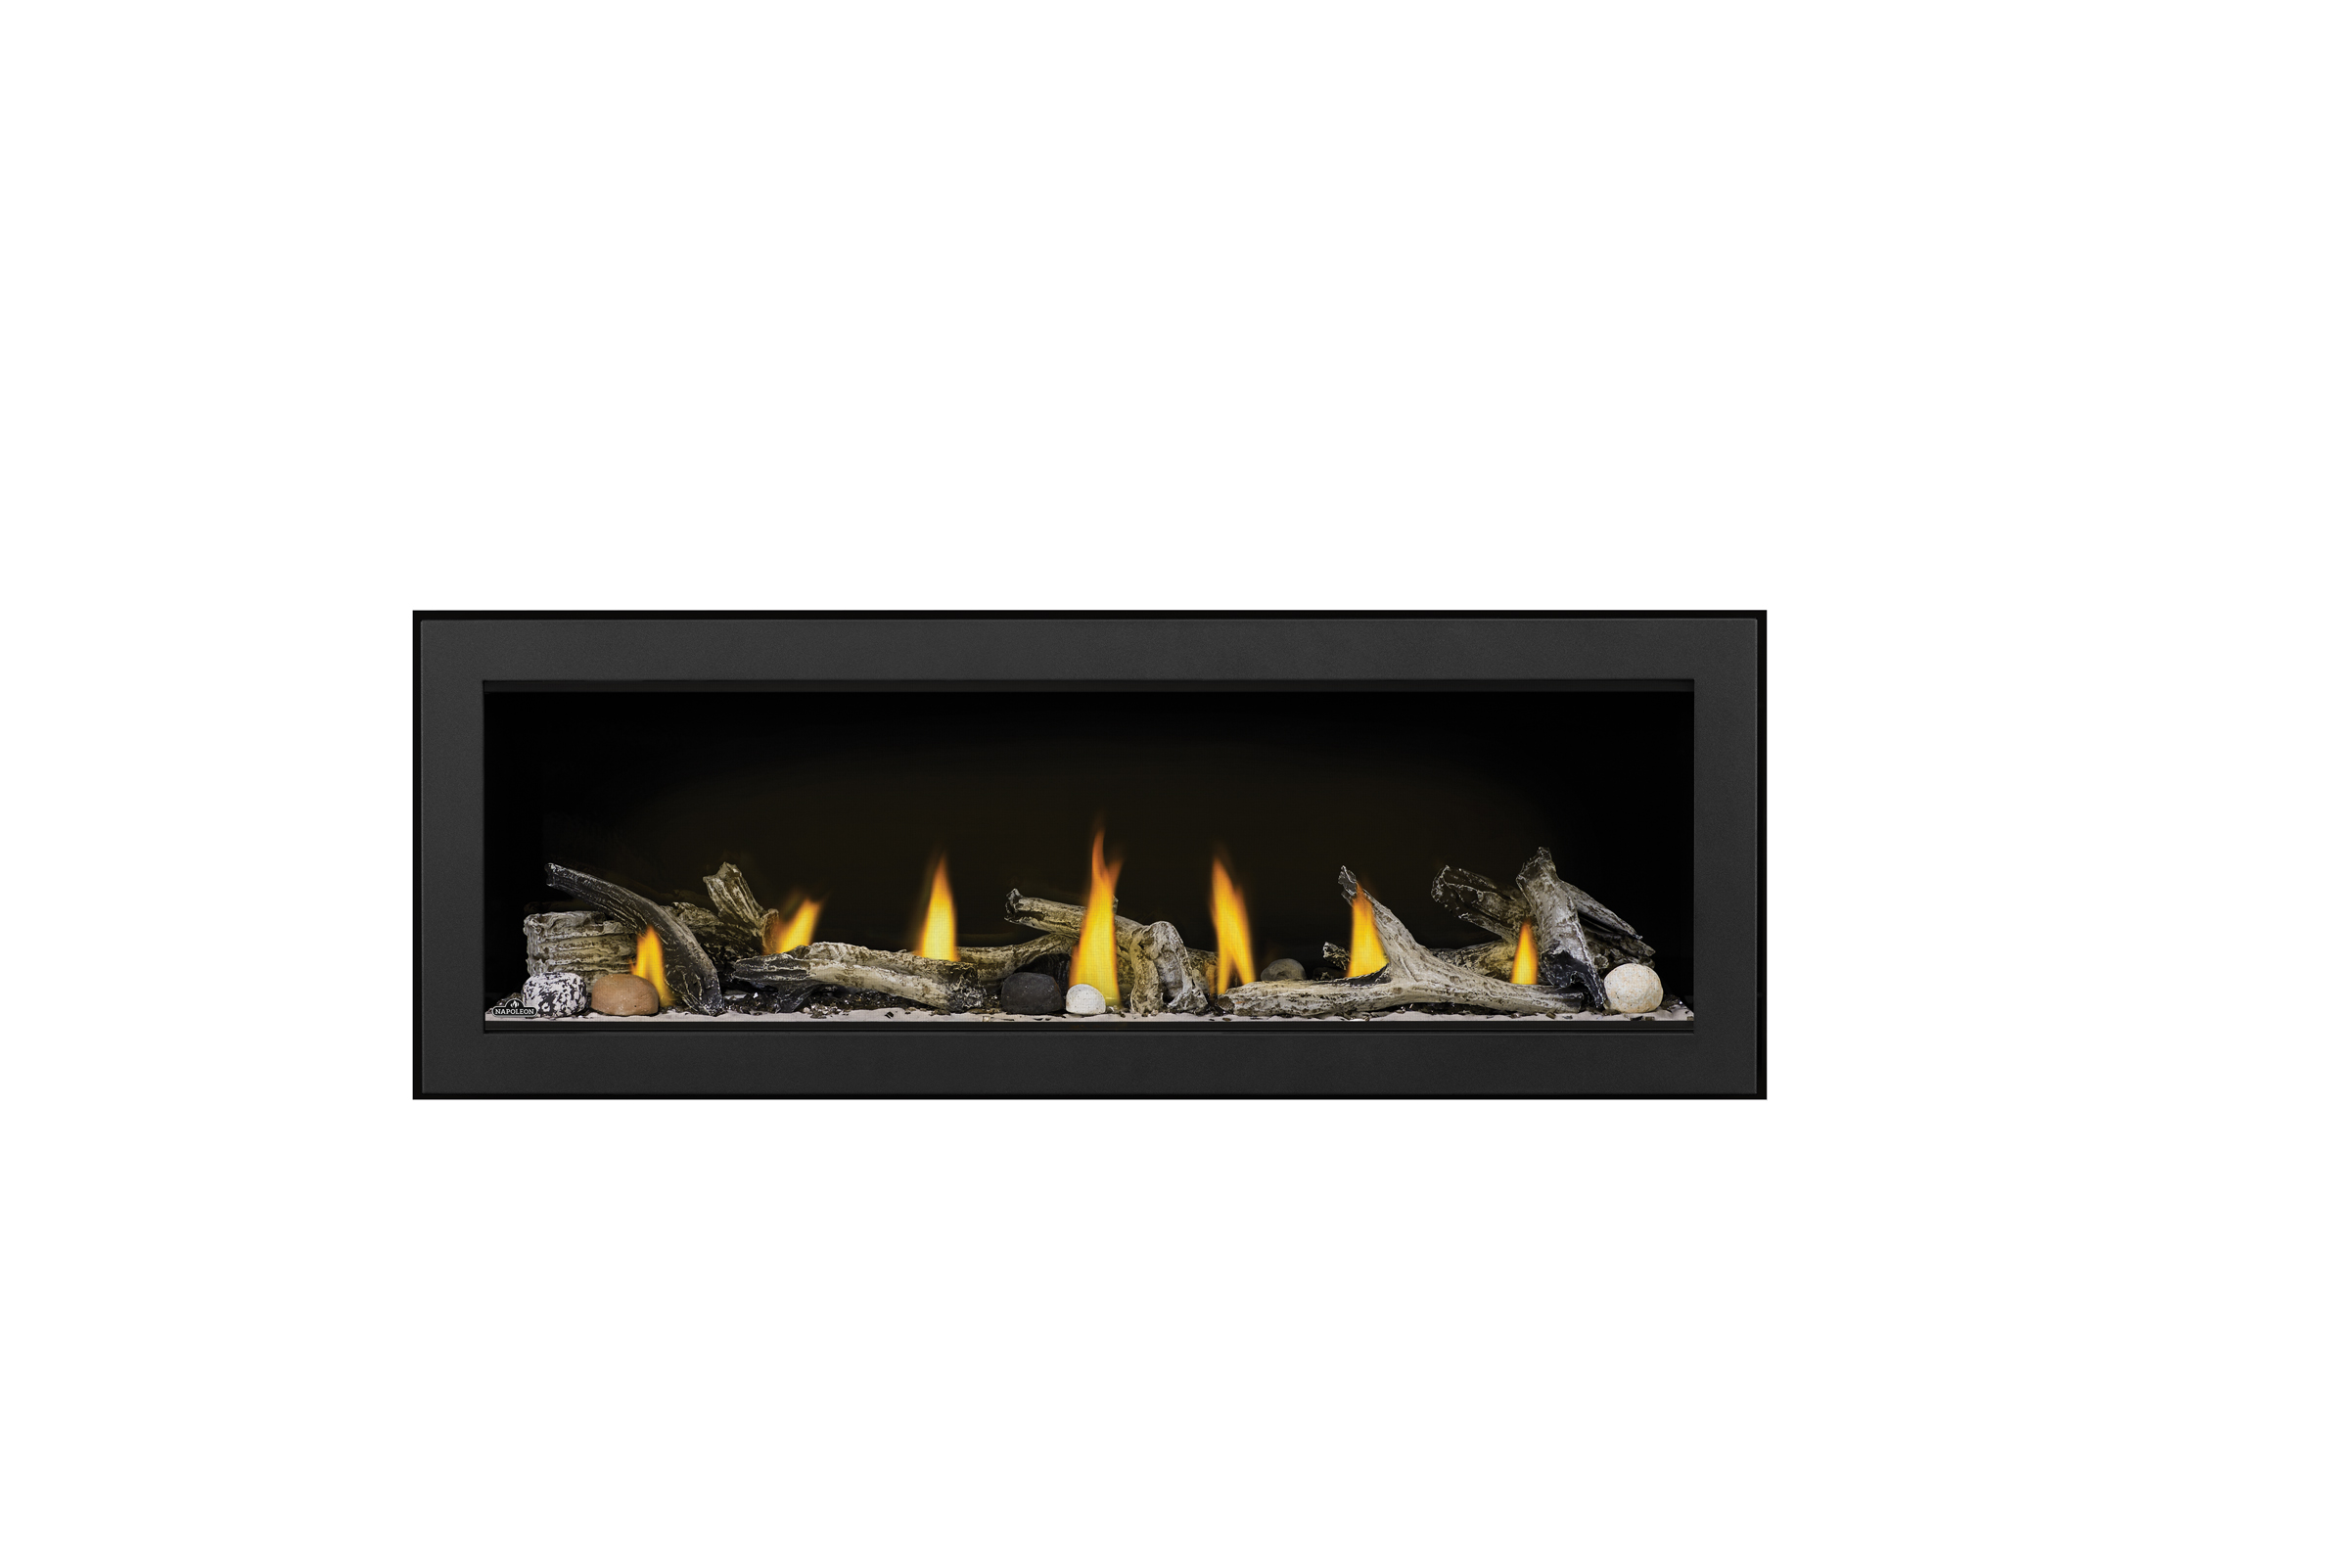 Napoleon L50n Acies 50 Direct Vent Gas Fireplaces